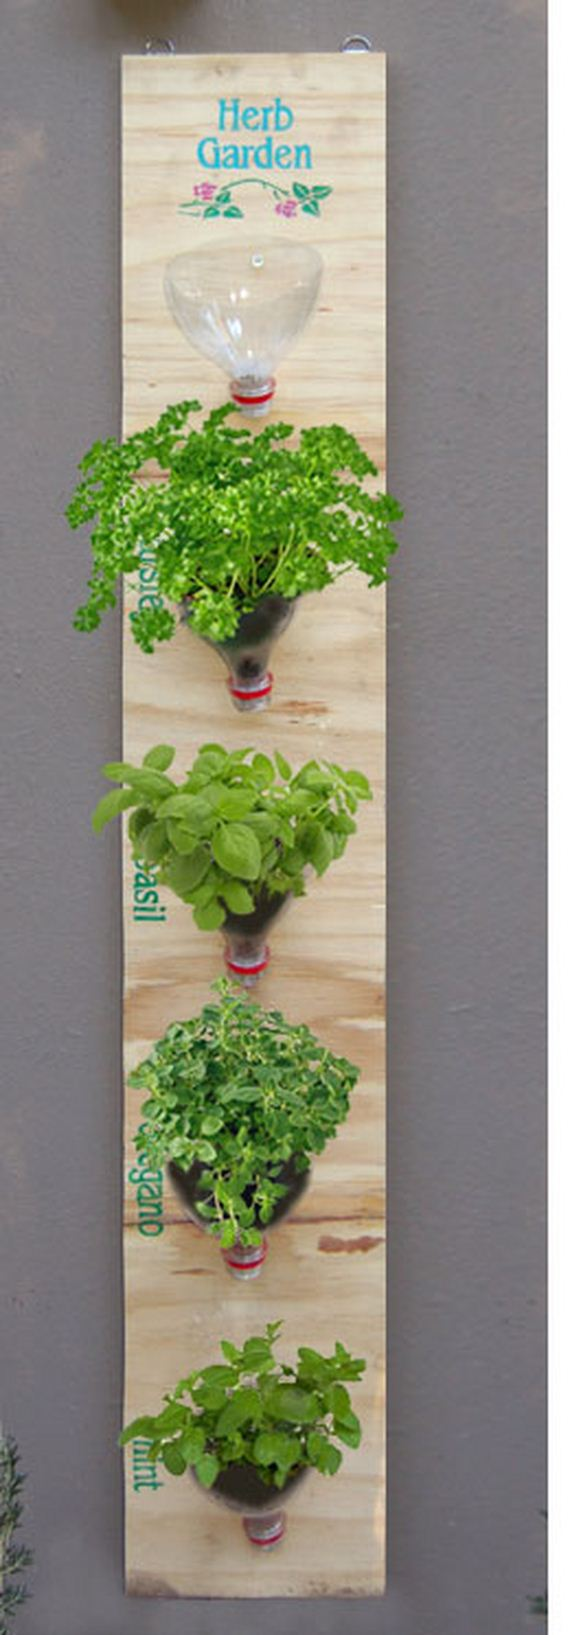 06-diy-herb-containers